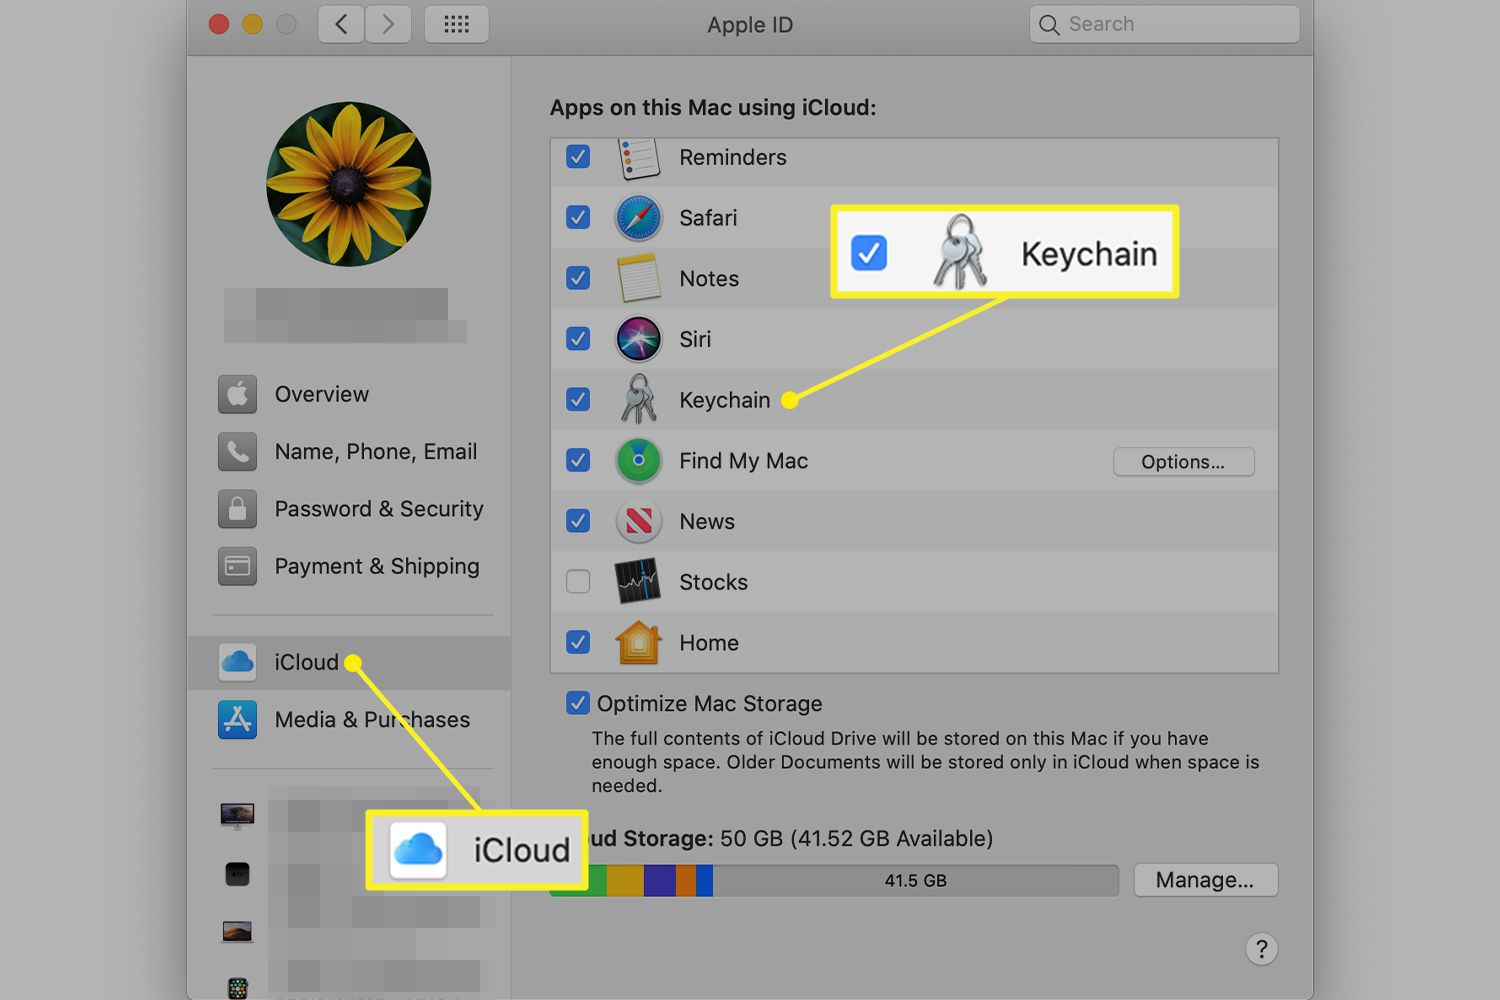 iCloud preferences with Keychain highlighted